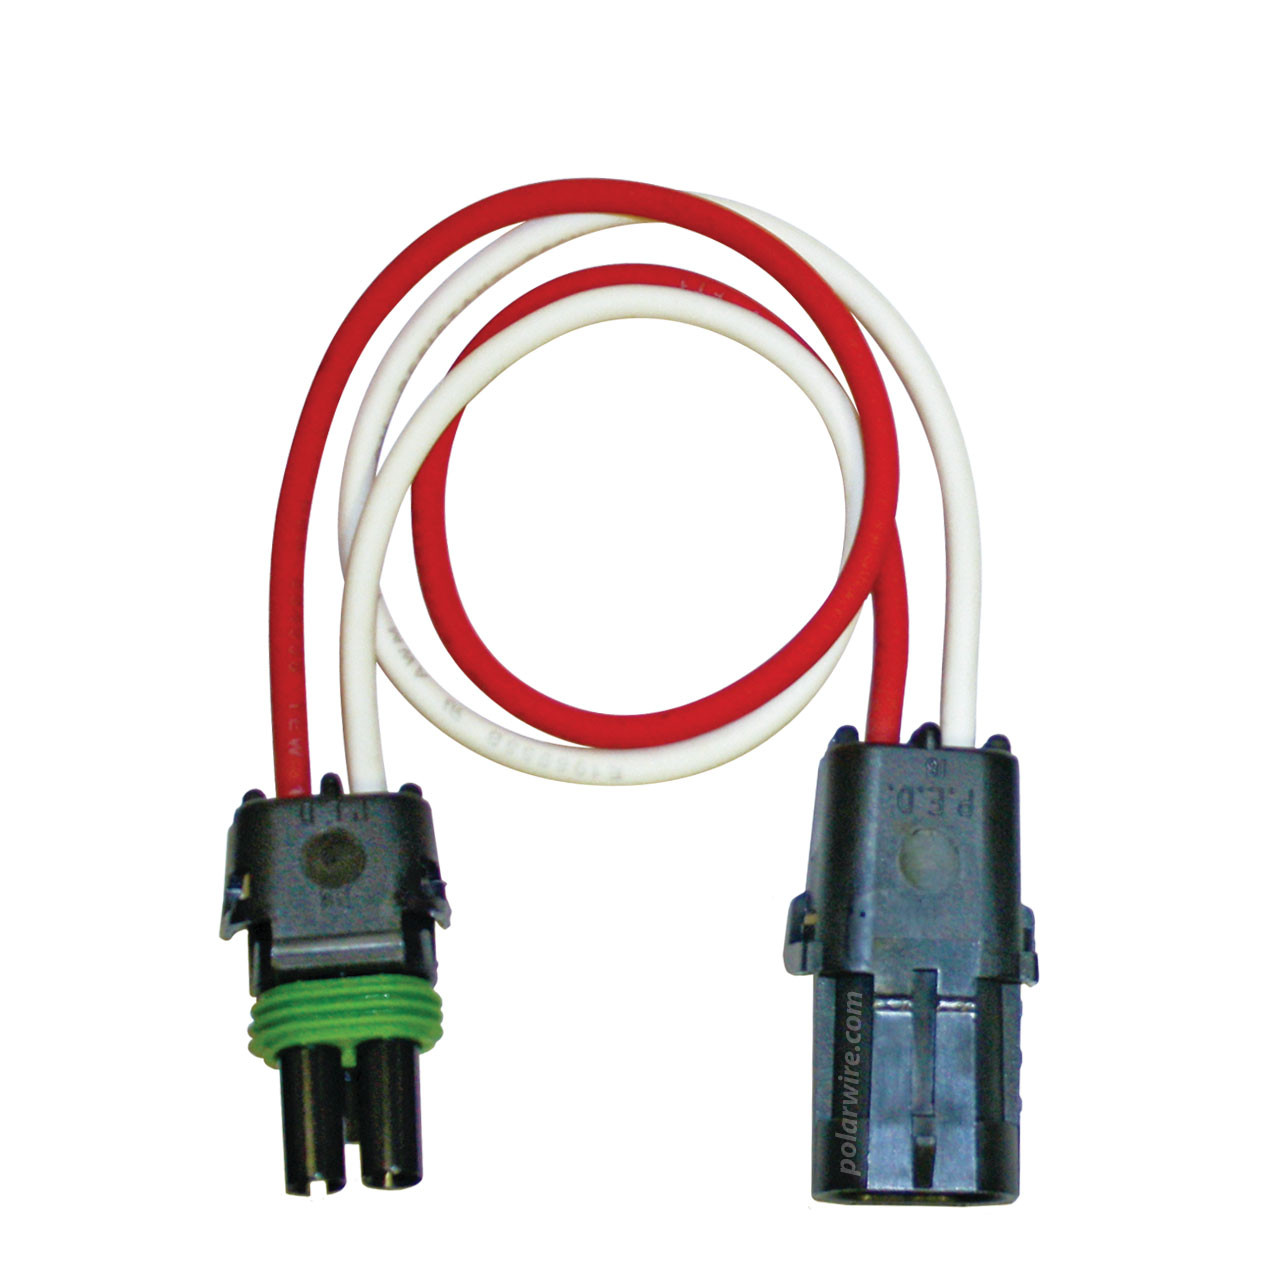 12 inch 2 pole Weather Pack Pigtail wired with 18 AWG Arctic Ultraflex Blue wire in red and white